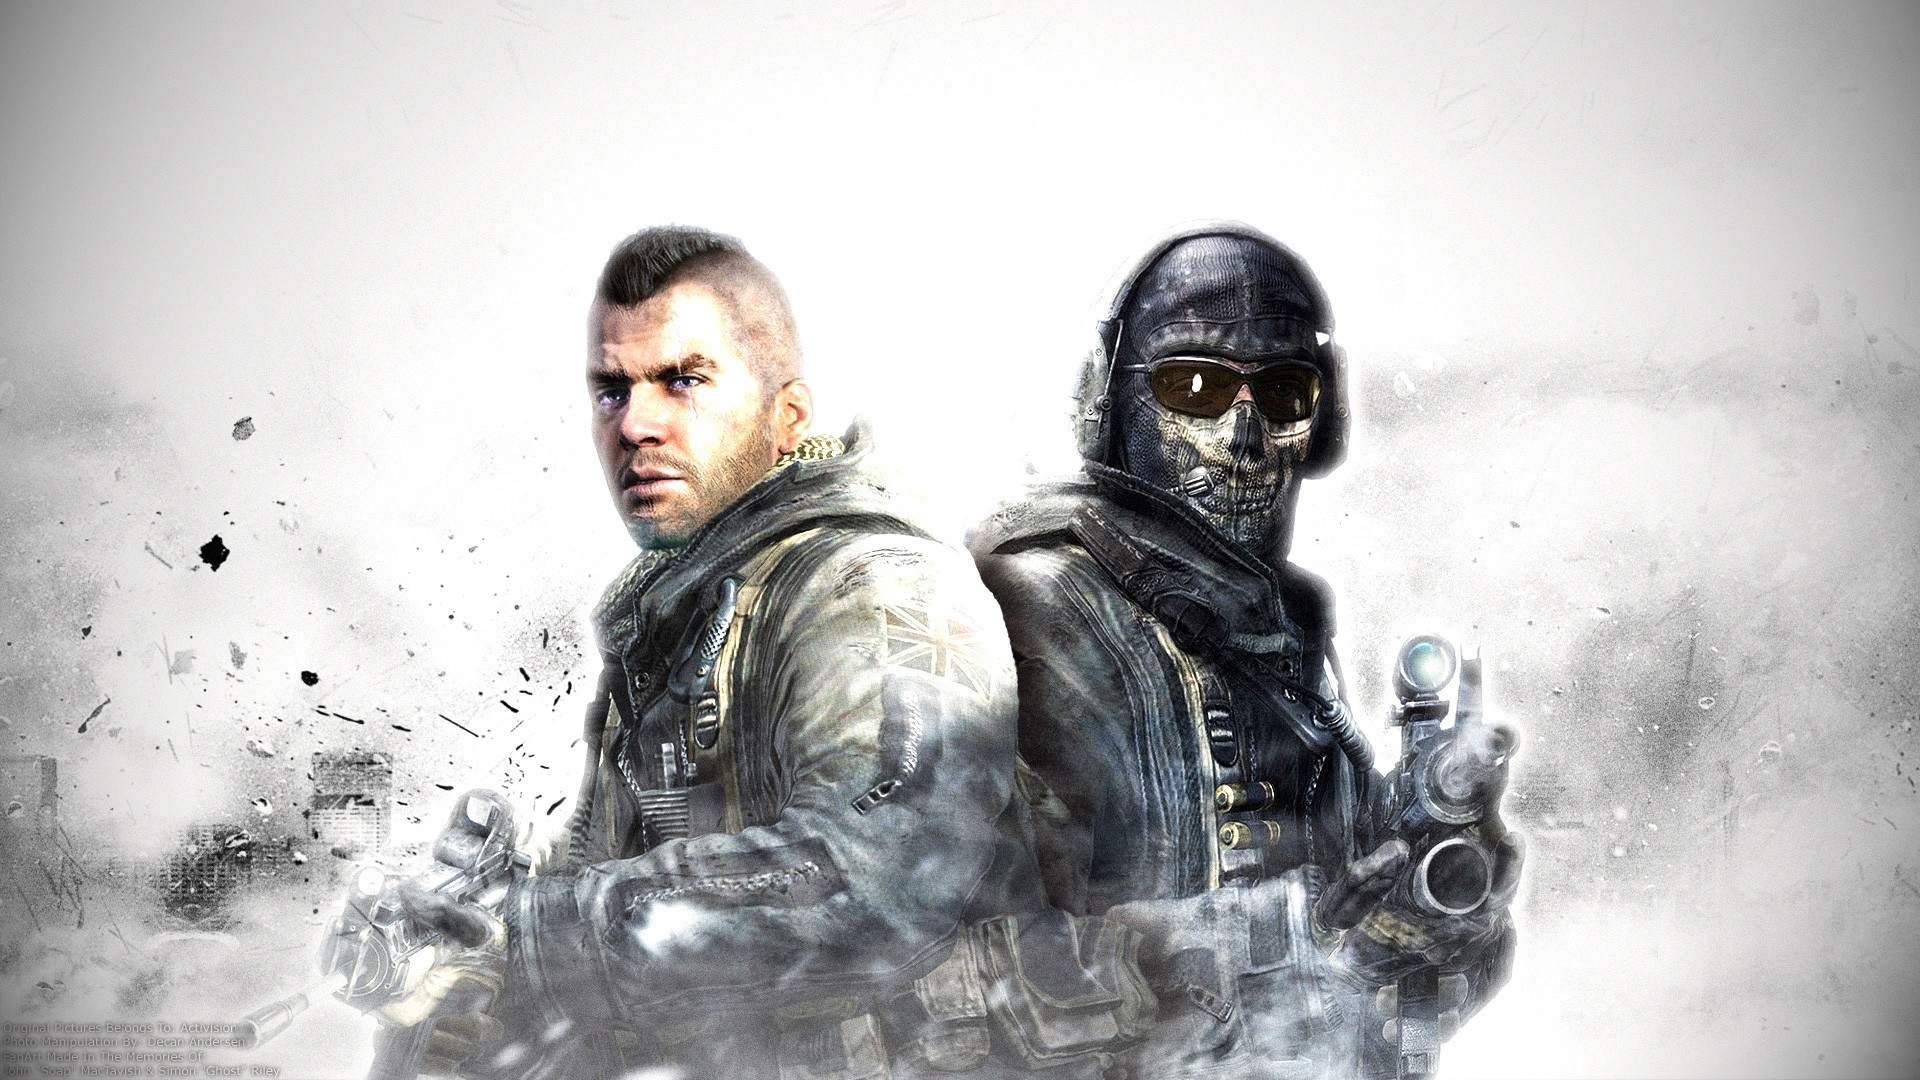 Cod wallpaper download free stunning full hd - Call of duty ghost wallpaper hd iphone 5 ...